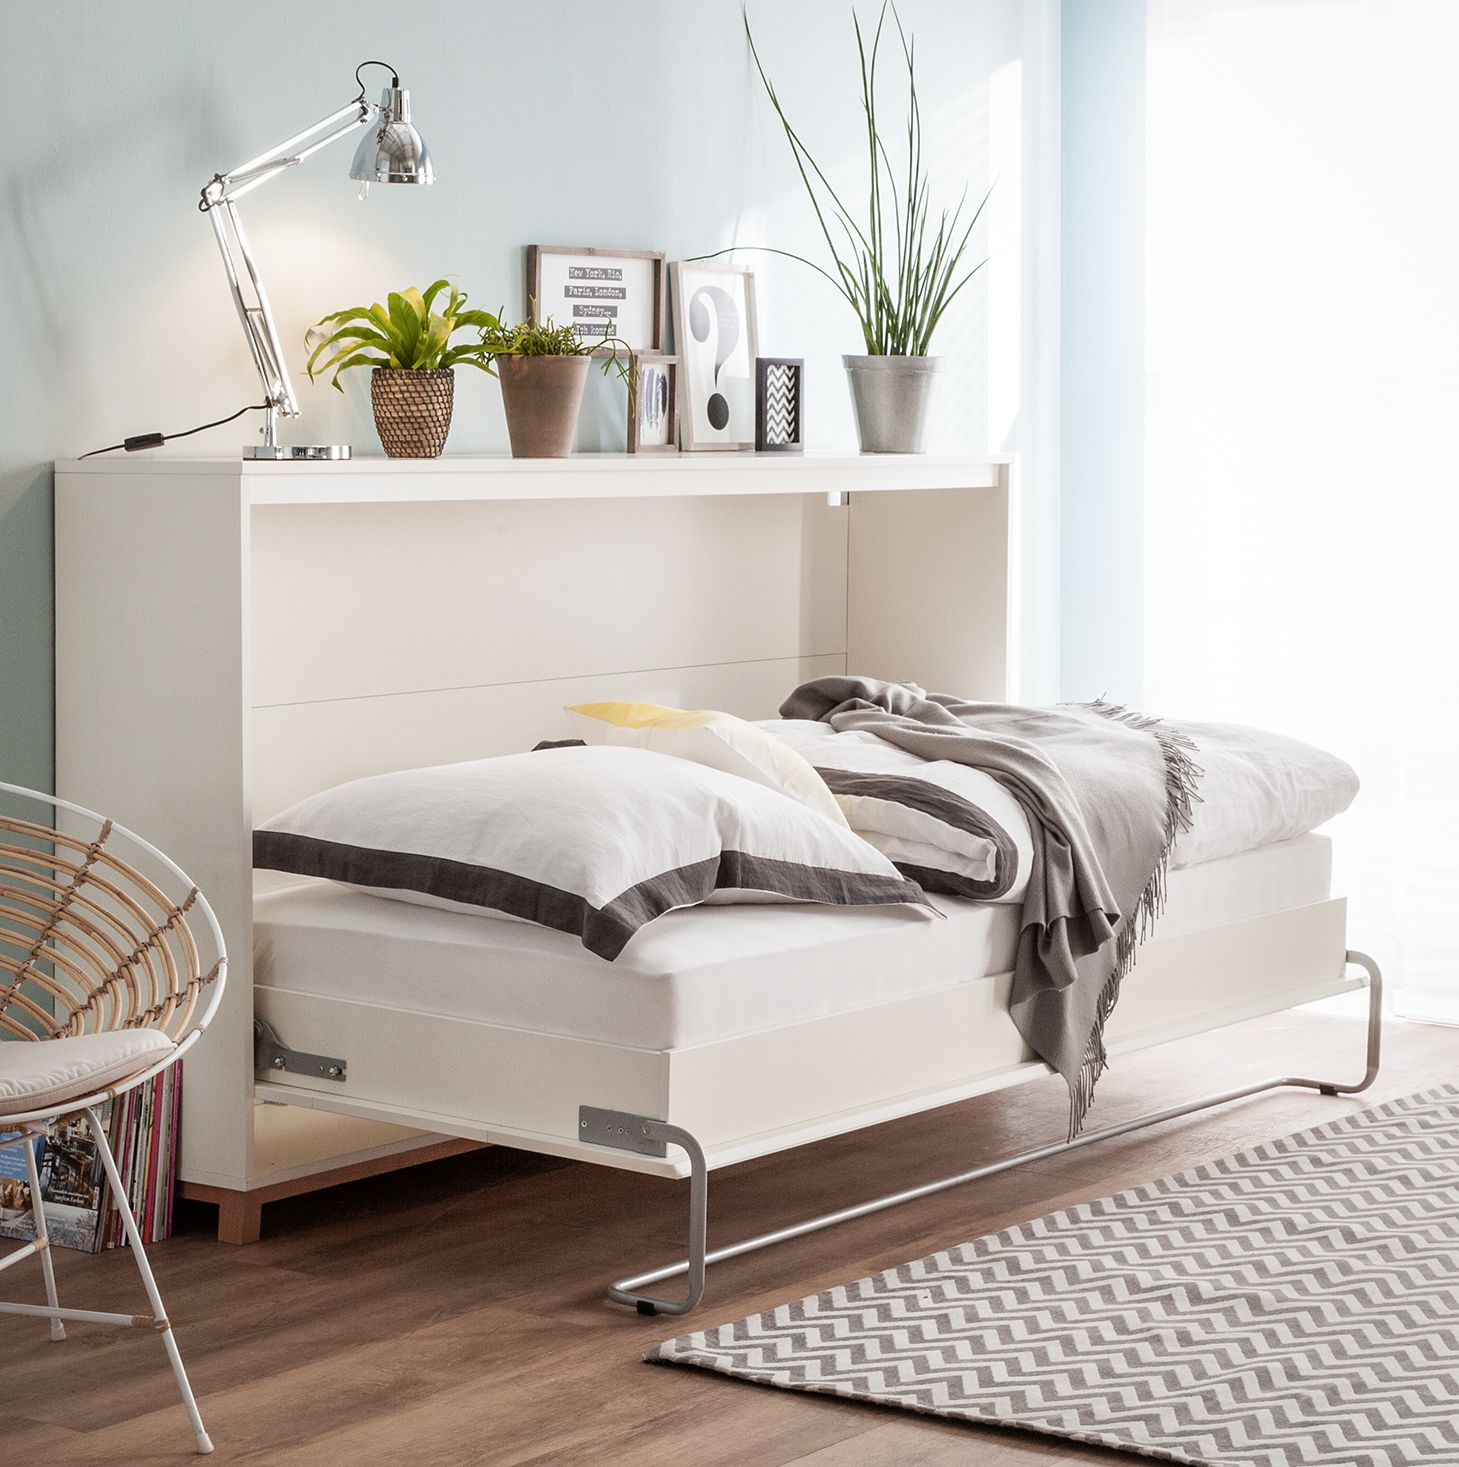 opklapbed kopen online internetwinkel. Black Bedroom Furniture Sets. Home Design Ideas